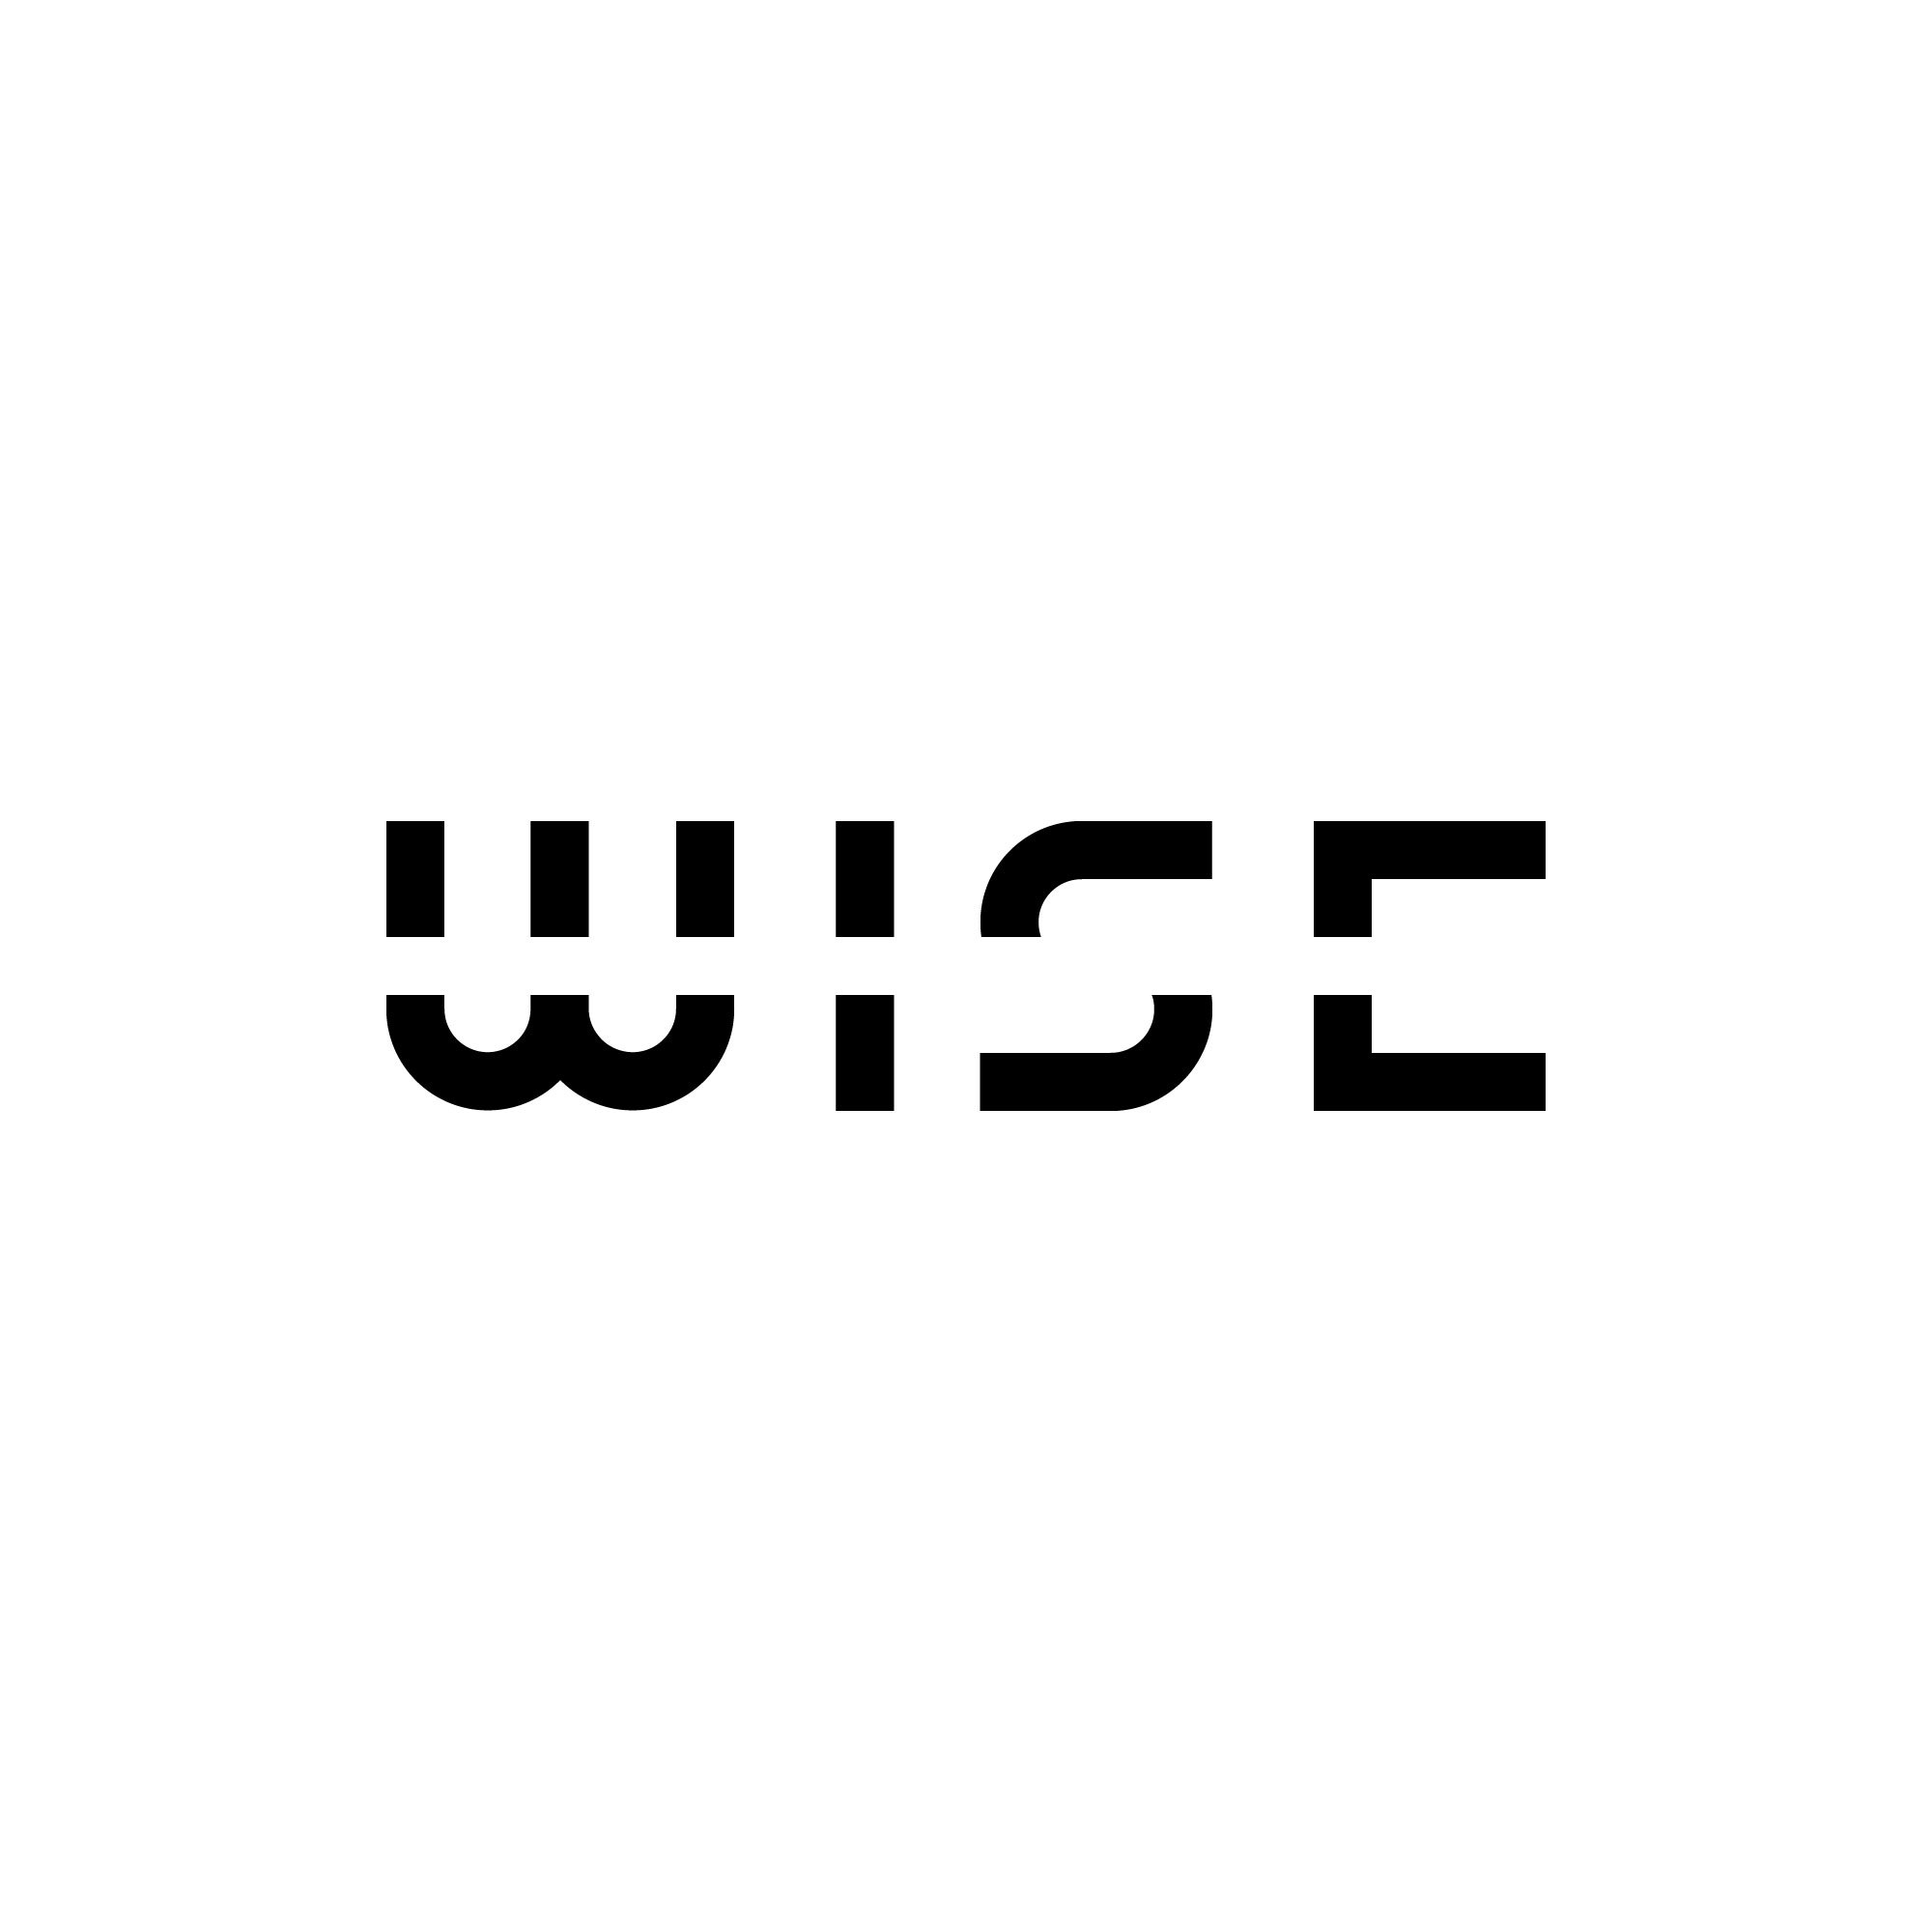 WISE_LOGO_SQUARE_BLACK_2k.jpg